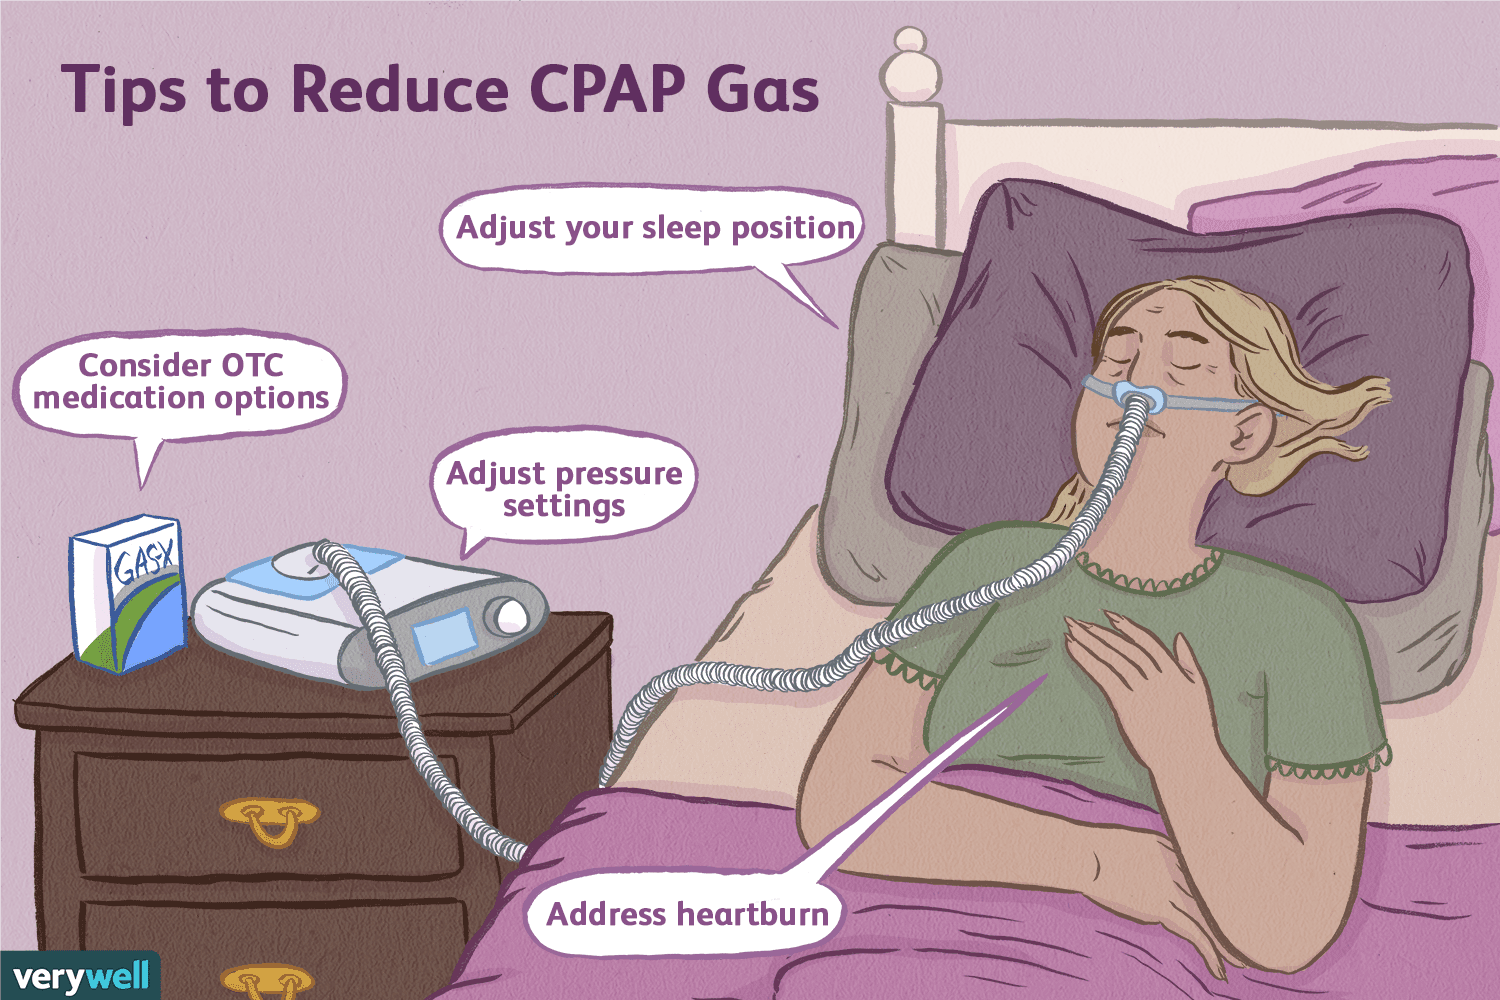 Ways to avoid CPAP-related gas